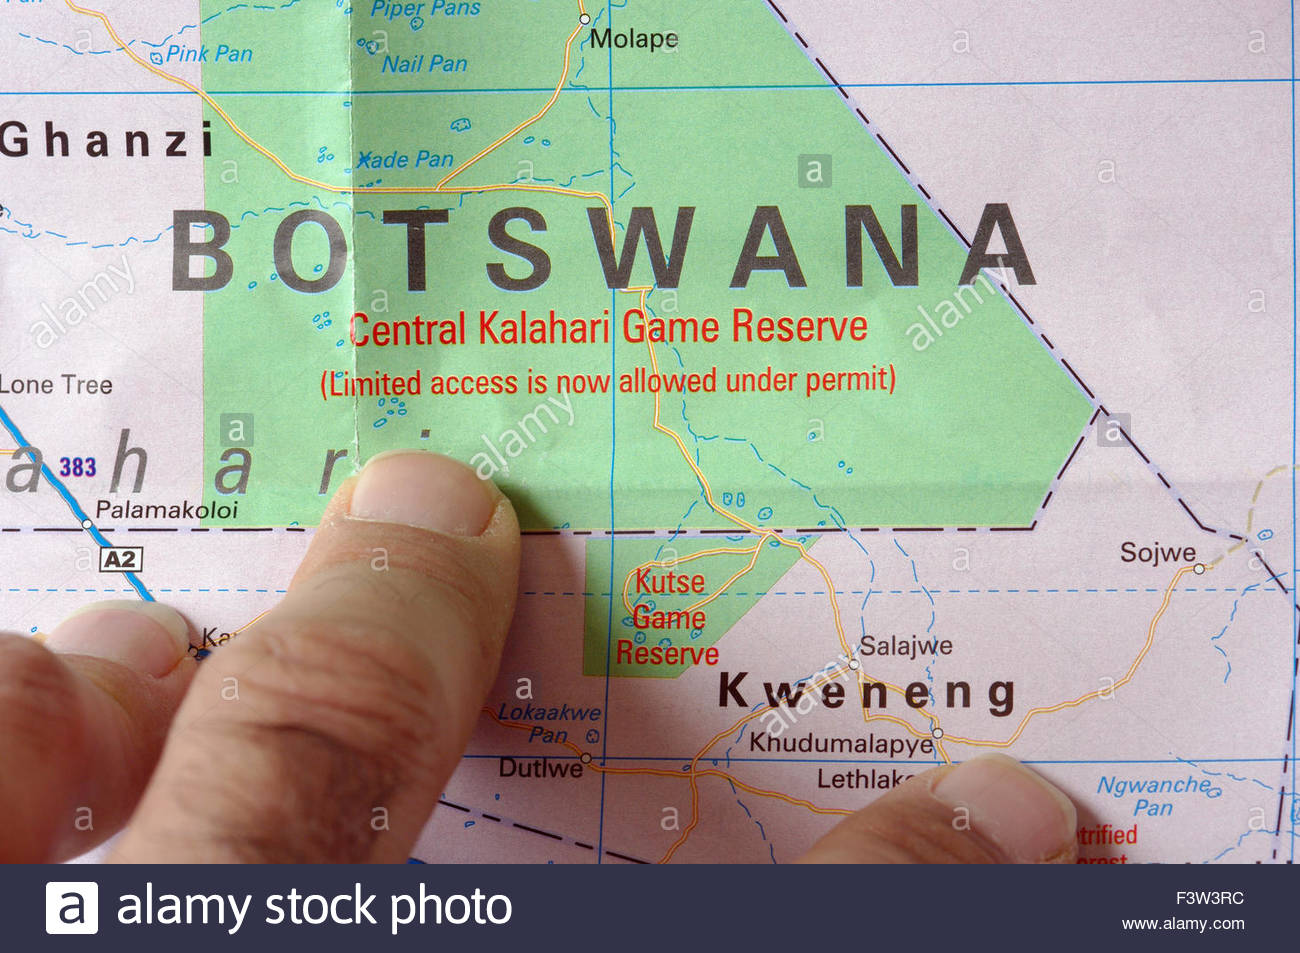 Map Of Southern Africa Africa Botswana Central Kalahari Game